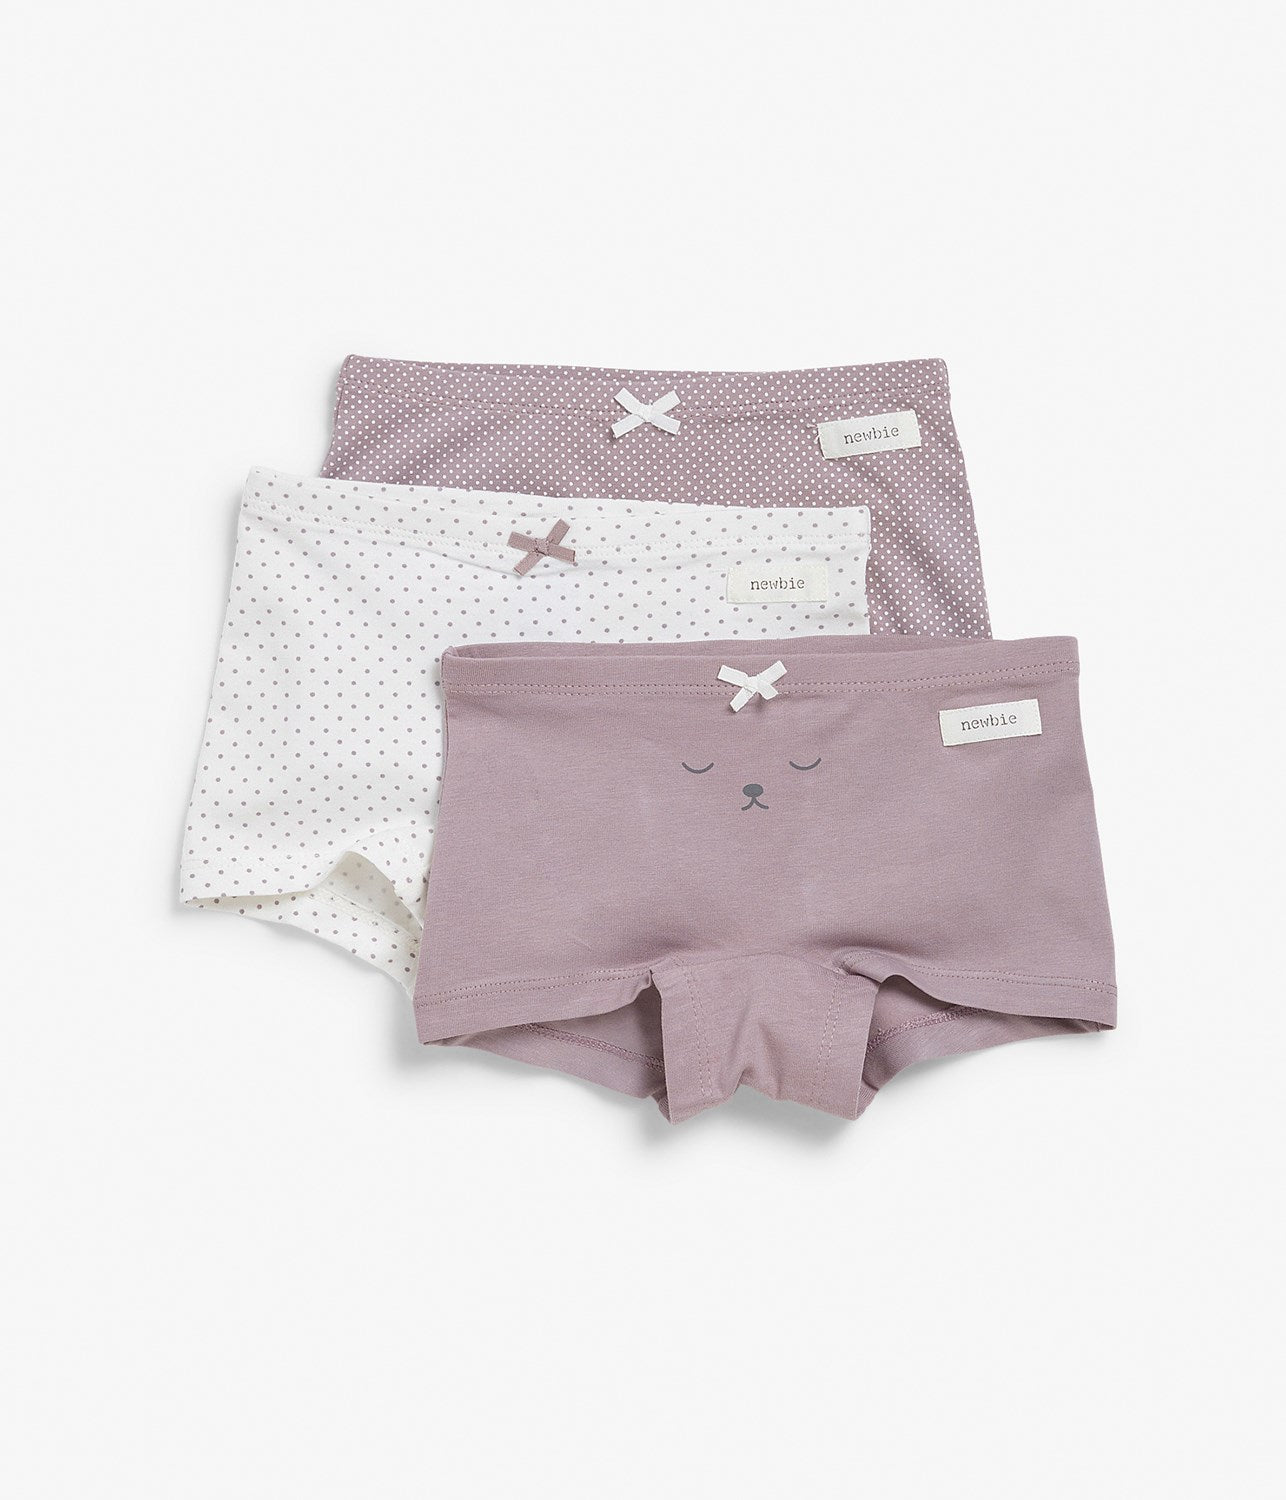 Kids boxer briefs 3-pack